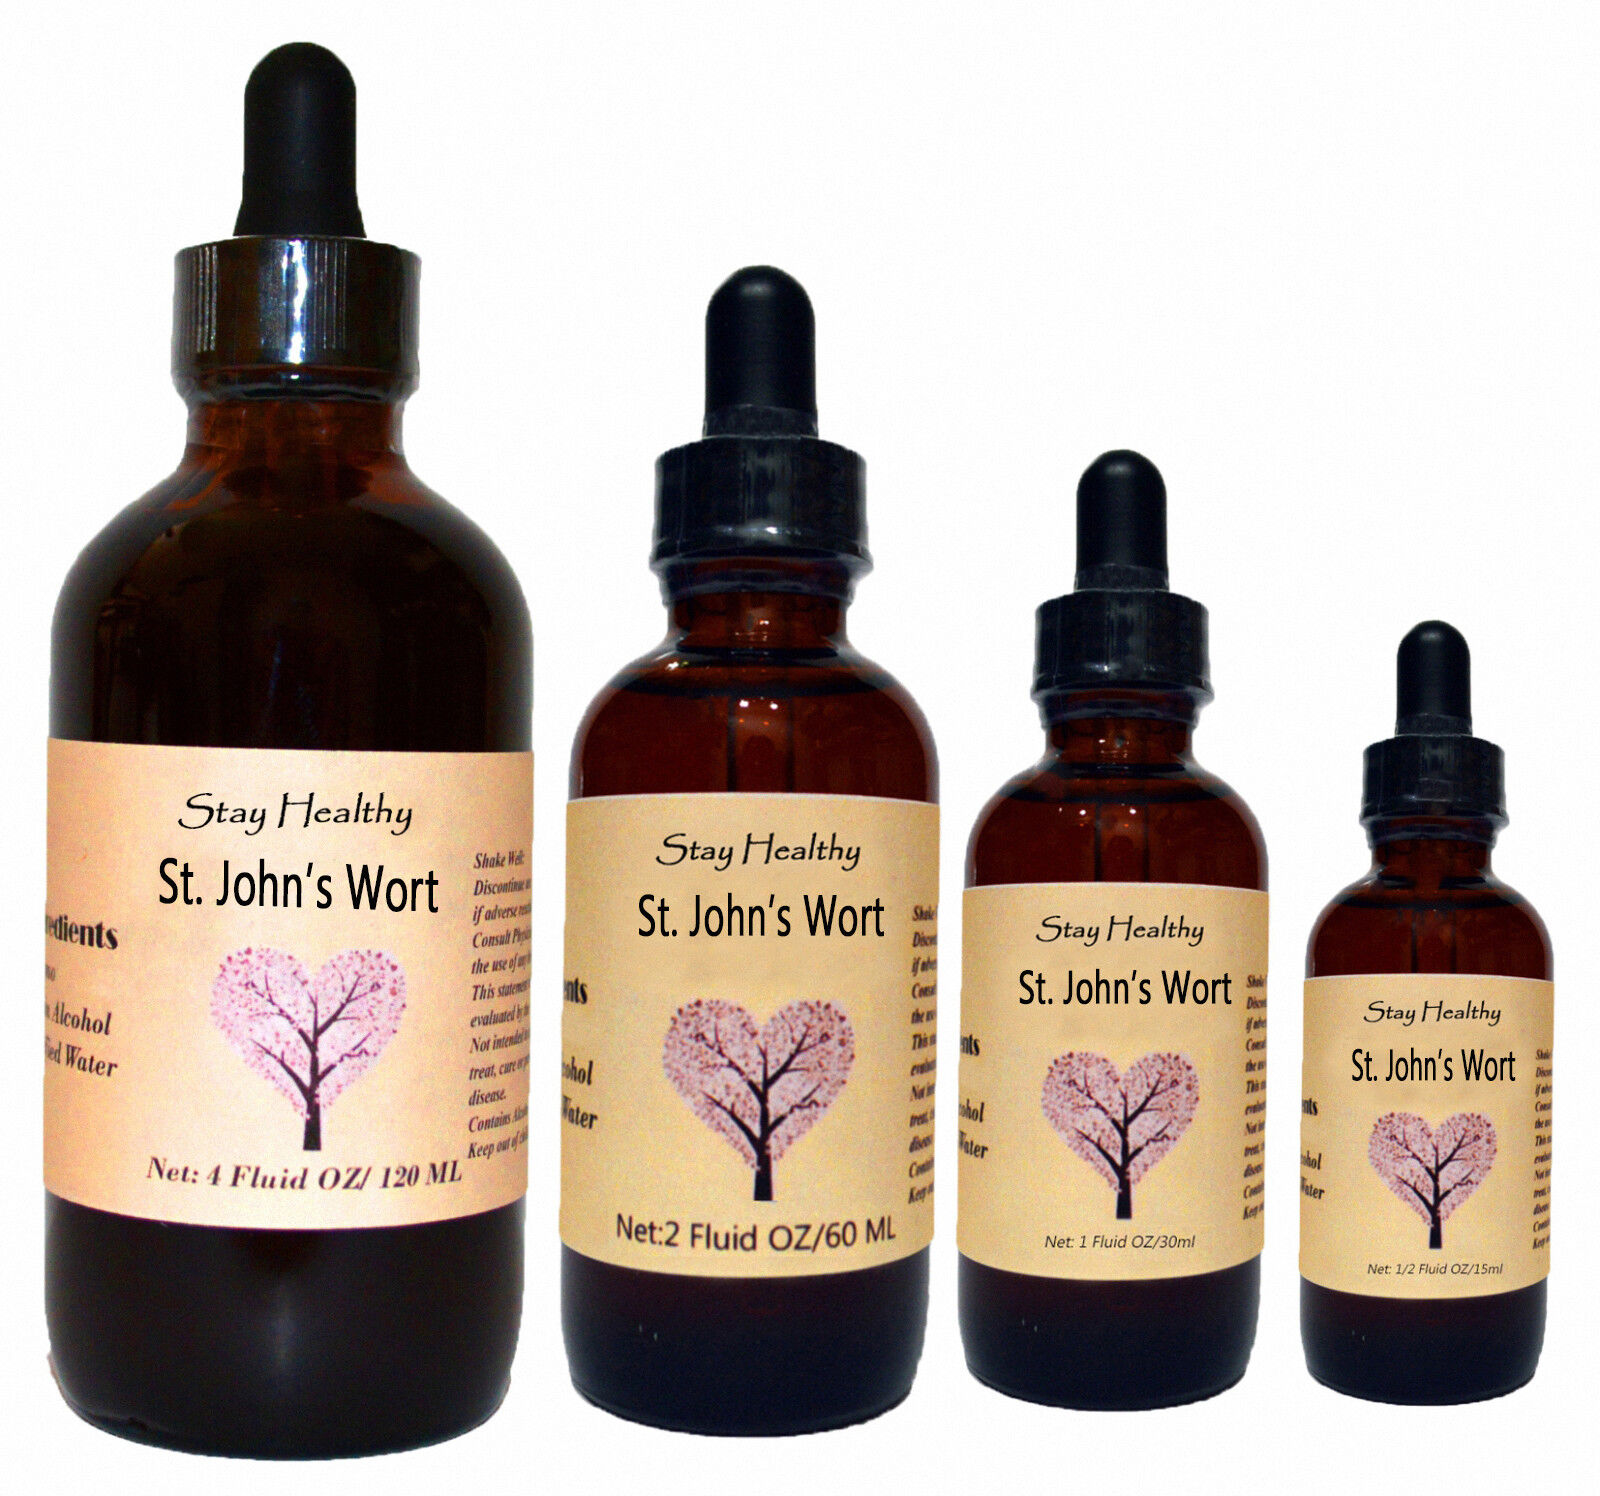 St Johns Wort Liquid Herbal Extract Premium Quality Tincture